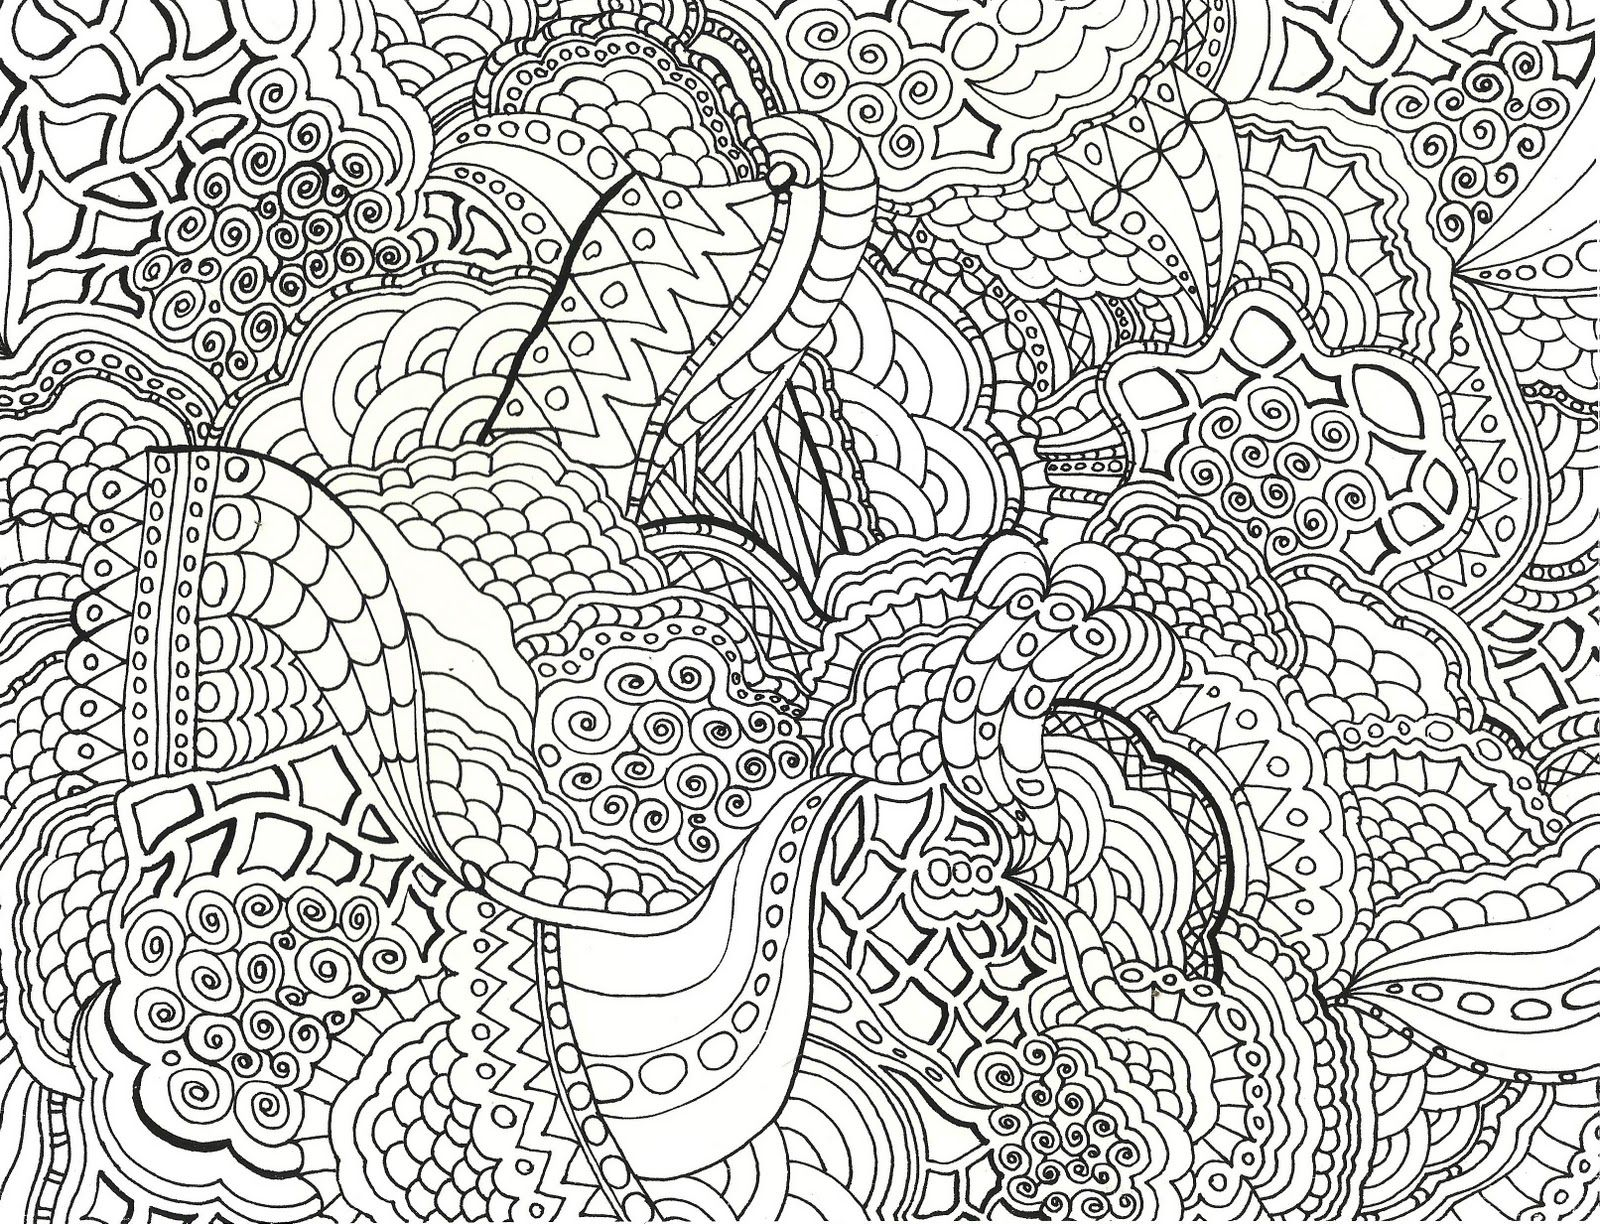 Coloring Pages To Print Designs : Intricate design coloring pages home